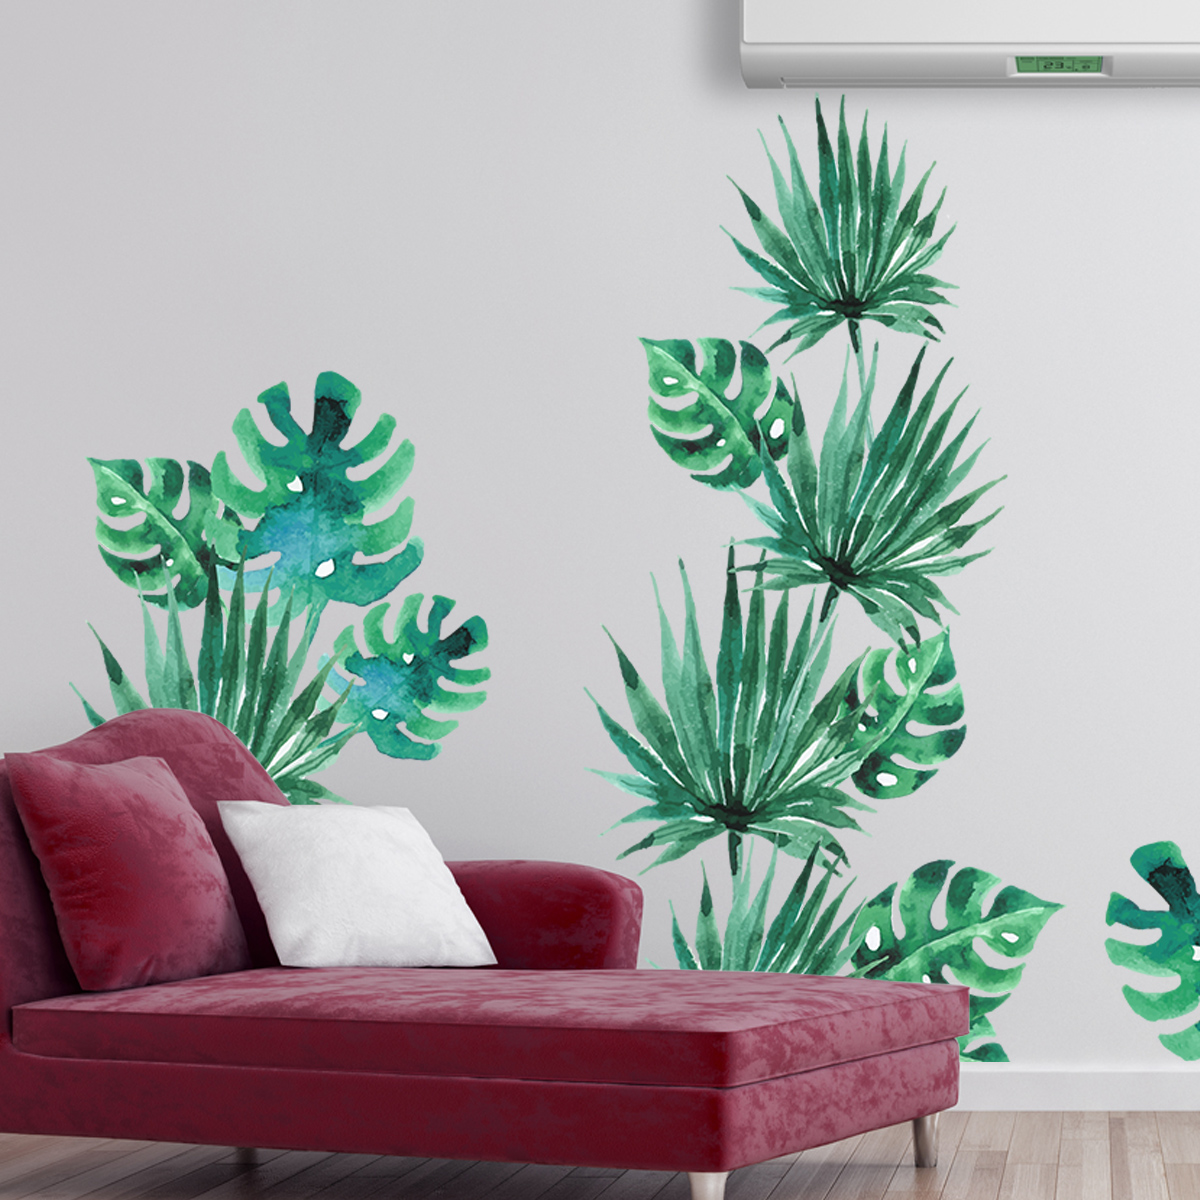 Sticker feuilles tropicales  Stickers Nature Feuilles